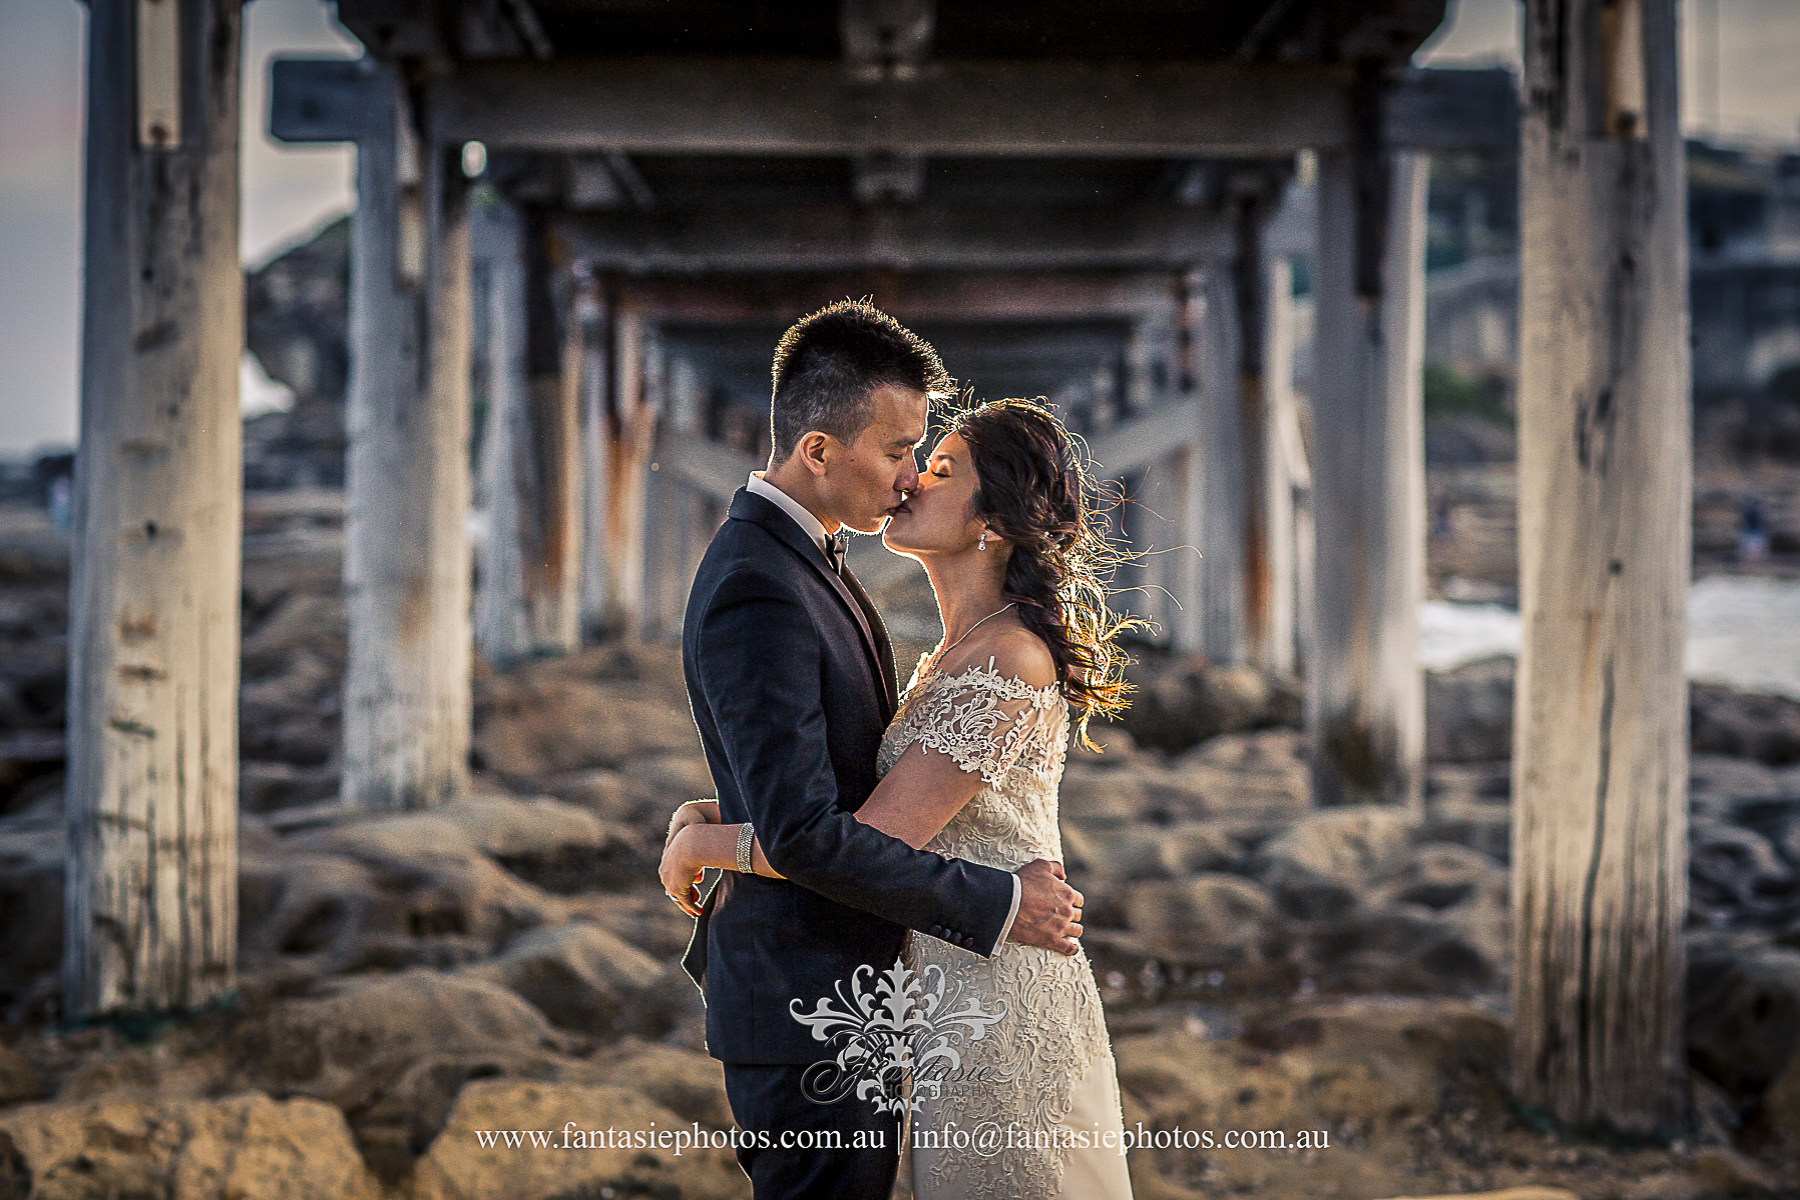 Best Stunning Wedding Photography at Le Perouse | Fantasie Photography